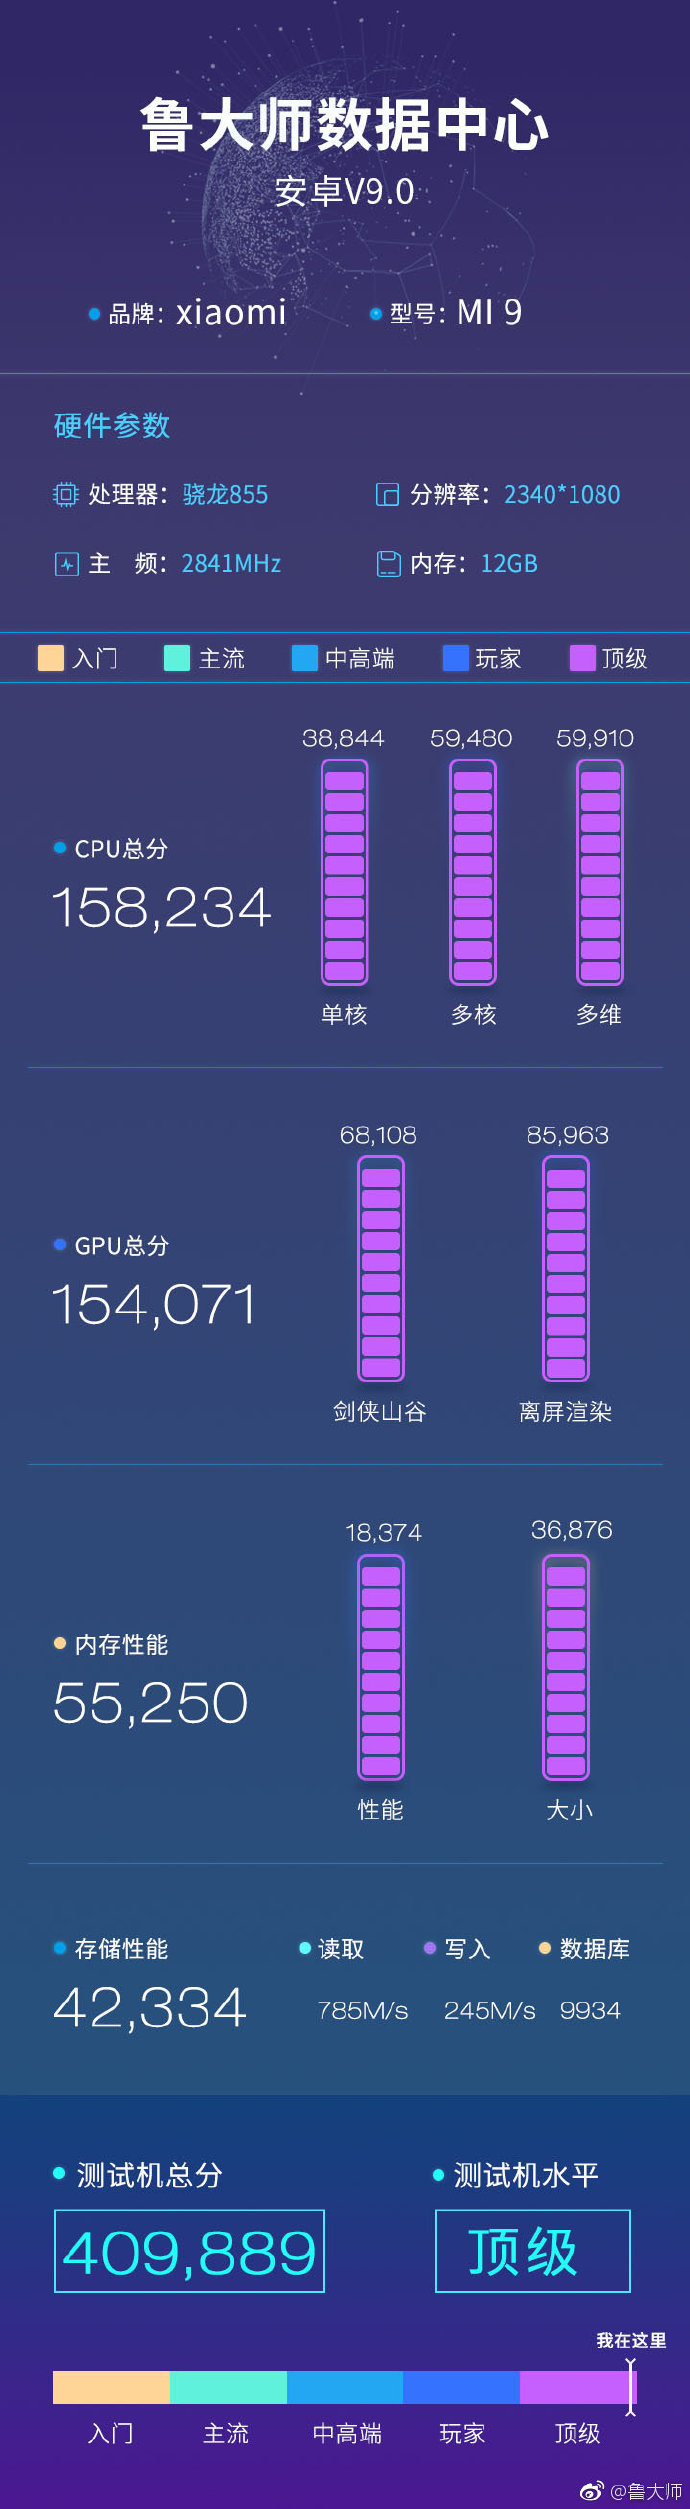 Xiaomi Mi 9 performante iphone s10 huawei antutu